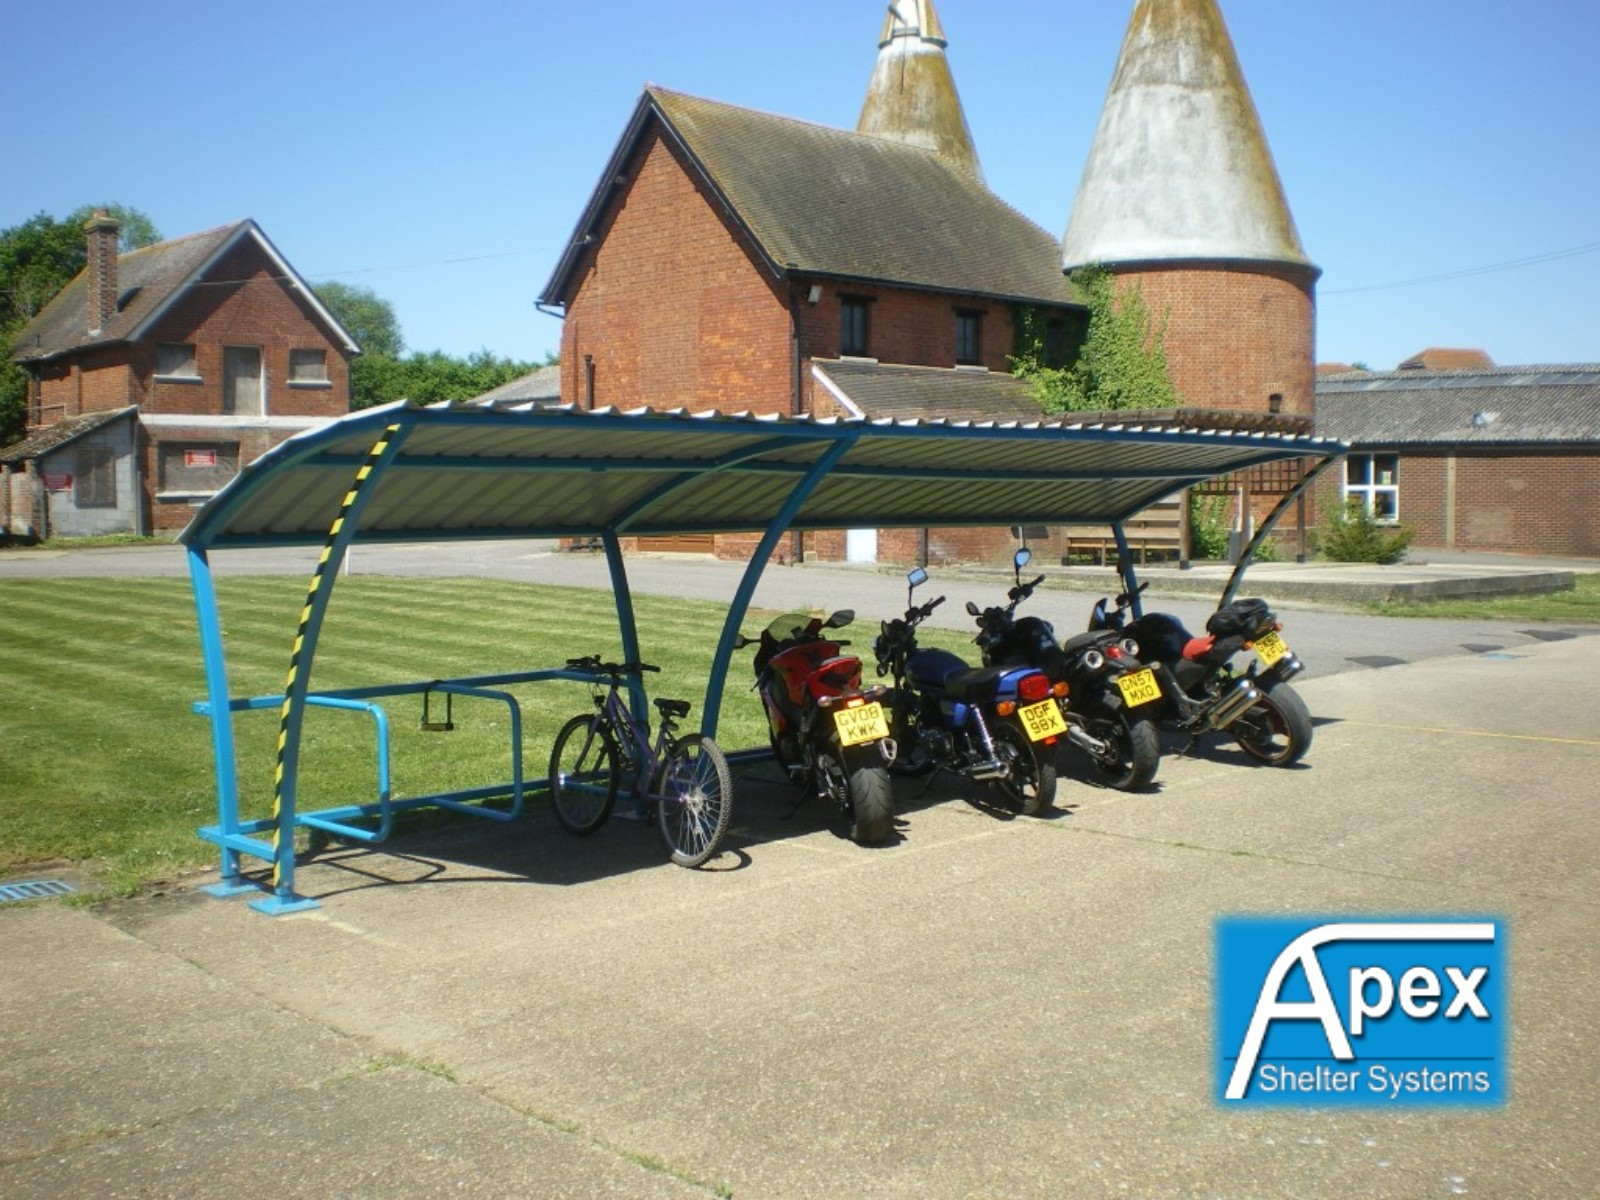 Beta P iR - iMc Cycle and Motorcycle Shelter